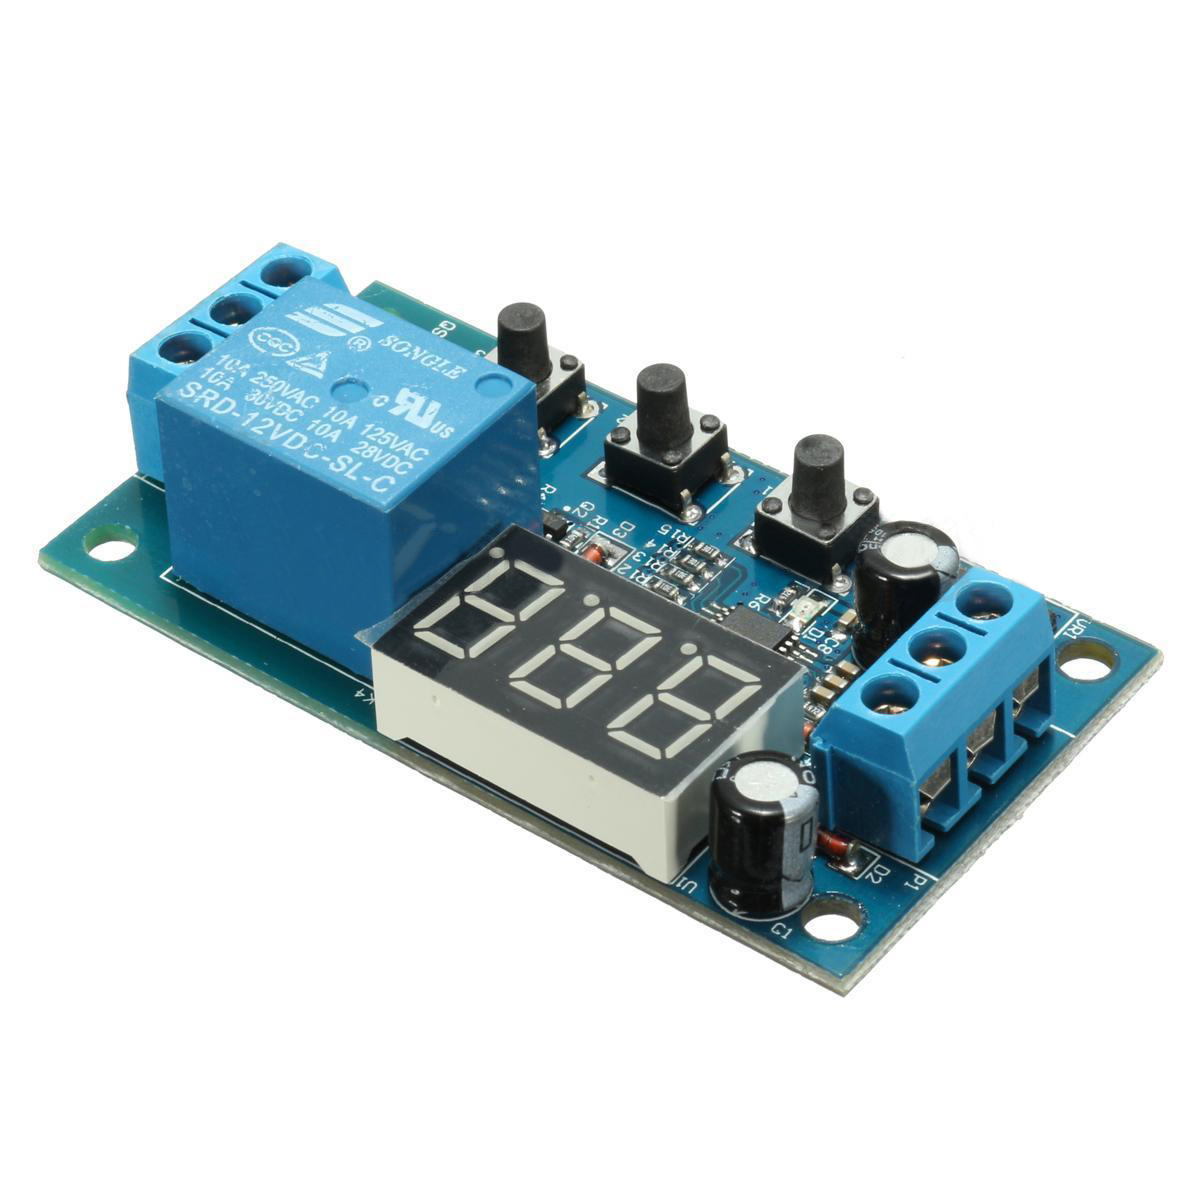 1pc Multifunction Time Delay Relay Module 12V Digital Display Trigger Cycle Switch Module Control Circuit 12v timing delay relay module cycle timer digital led dual display 0 999 hours